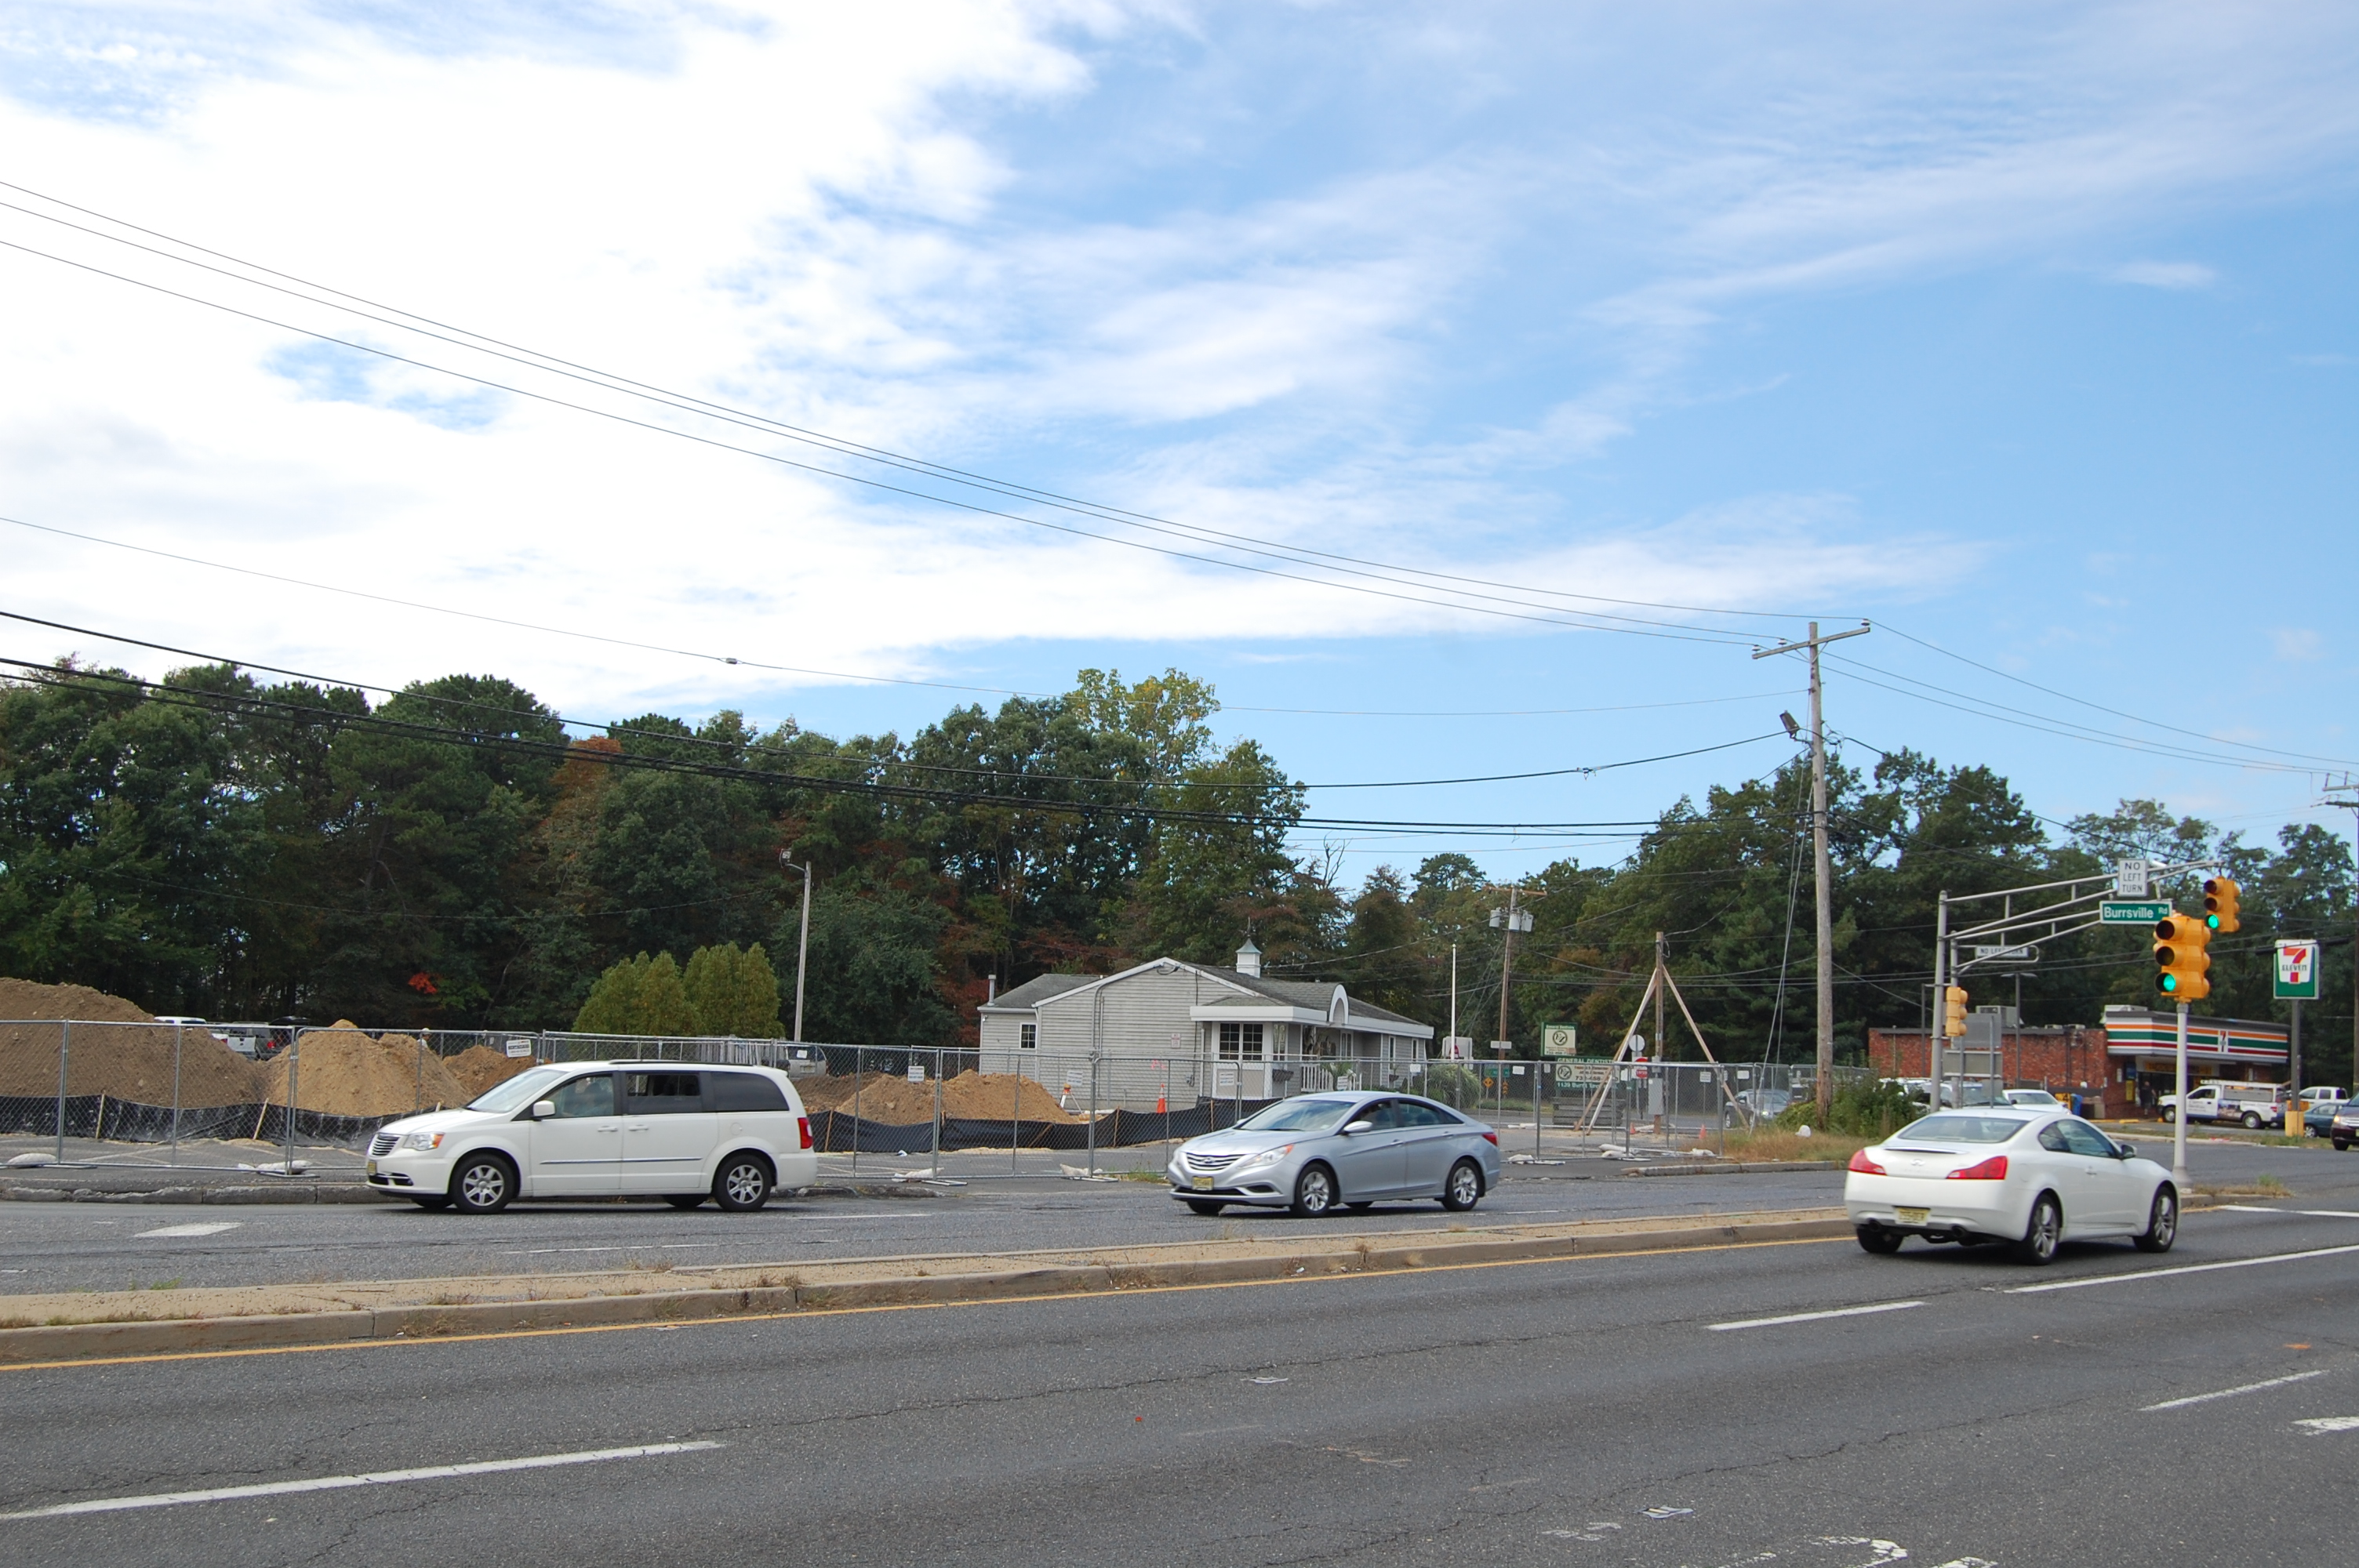 The corner of Burrsville and Burnt Tavern roads in Brick, with a new Santander bank branch under construction. (Photo: Daniel Nee)